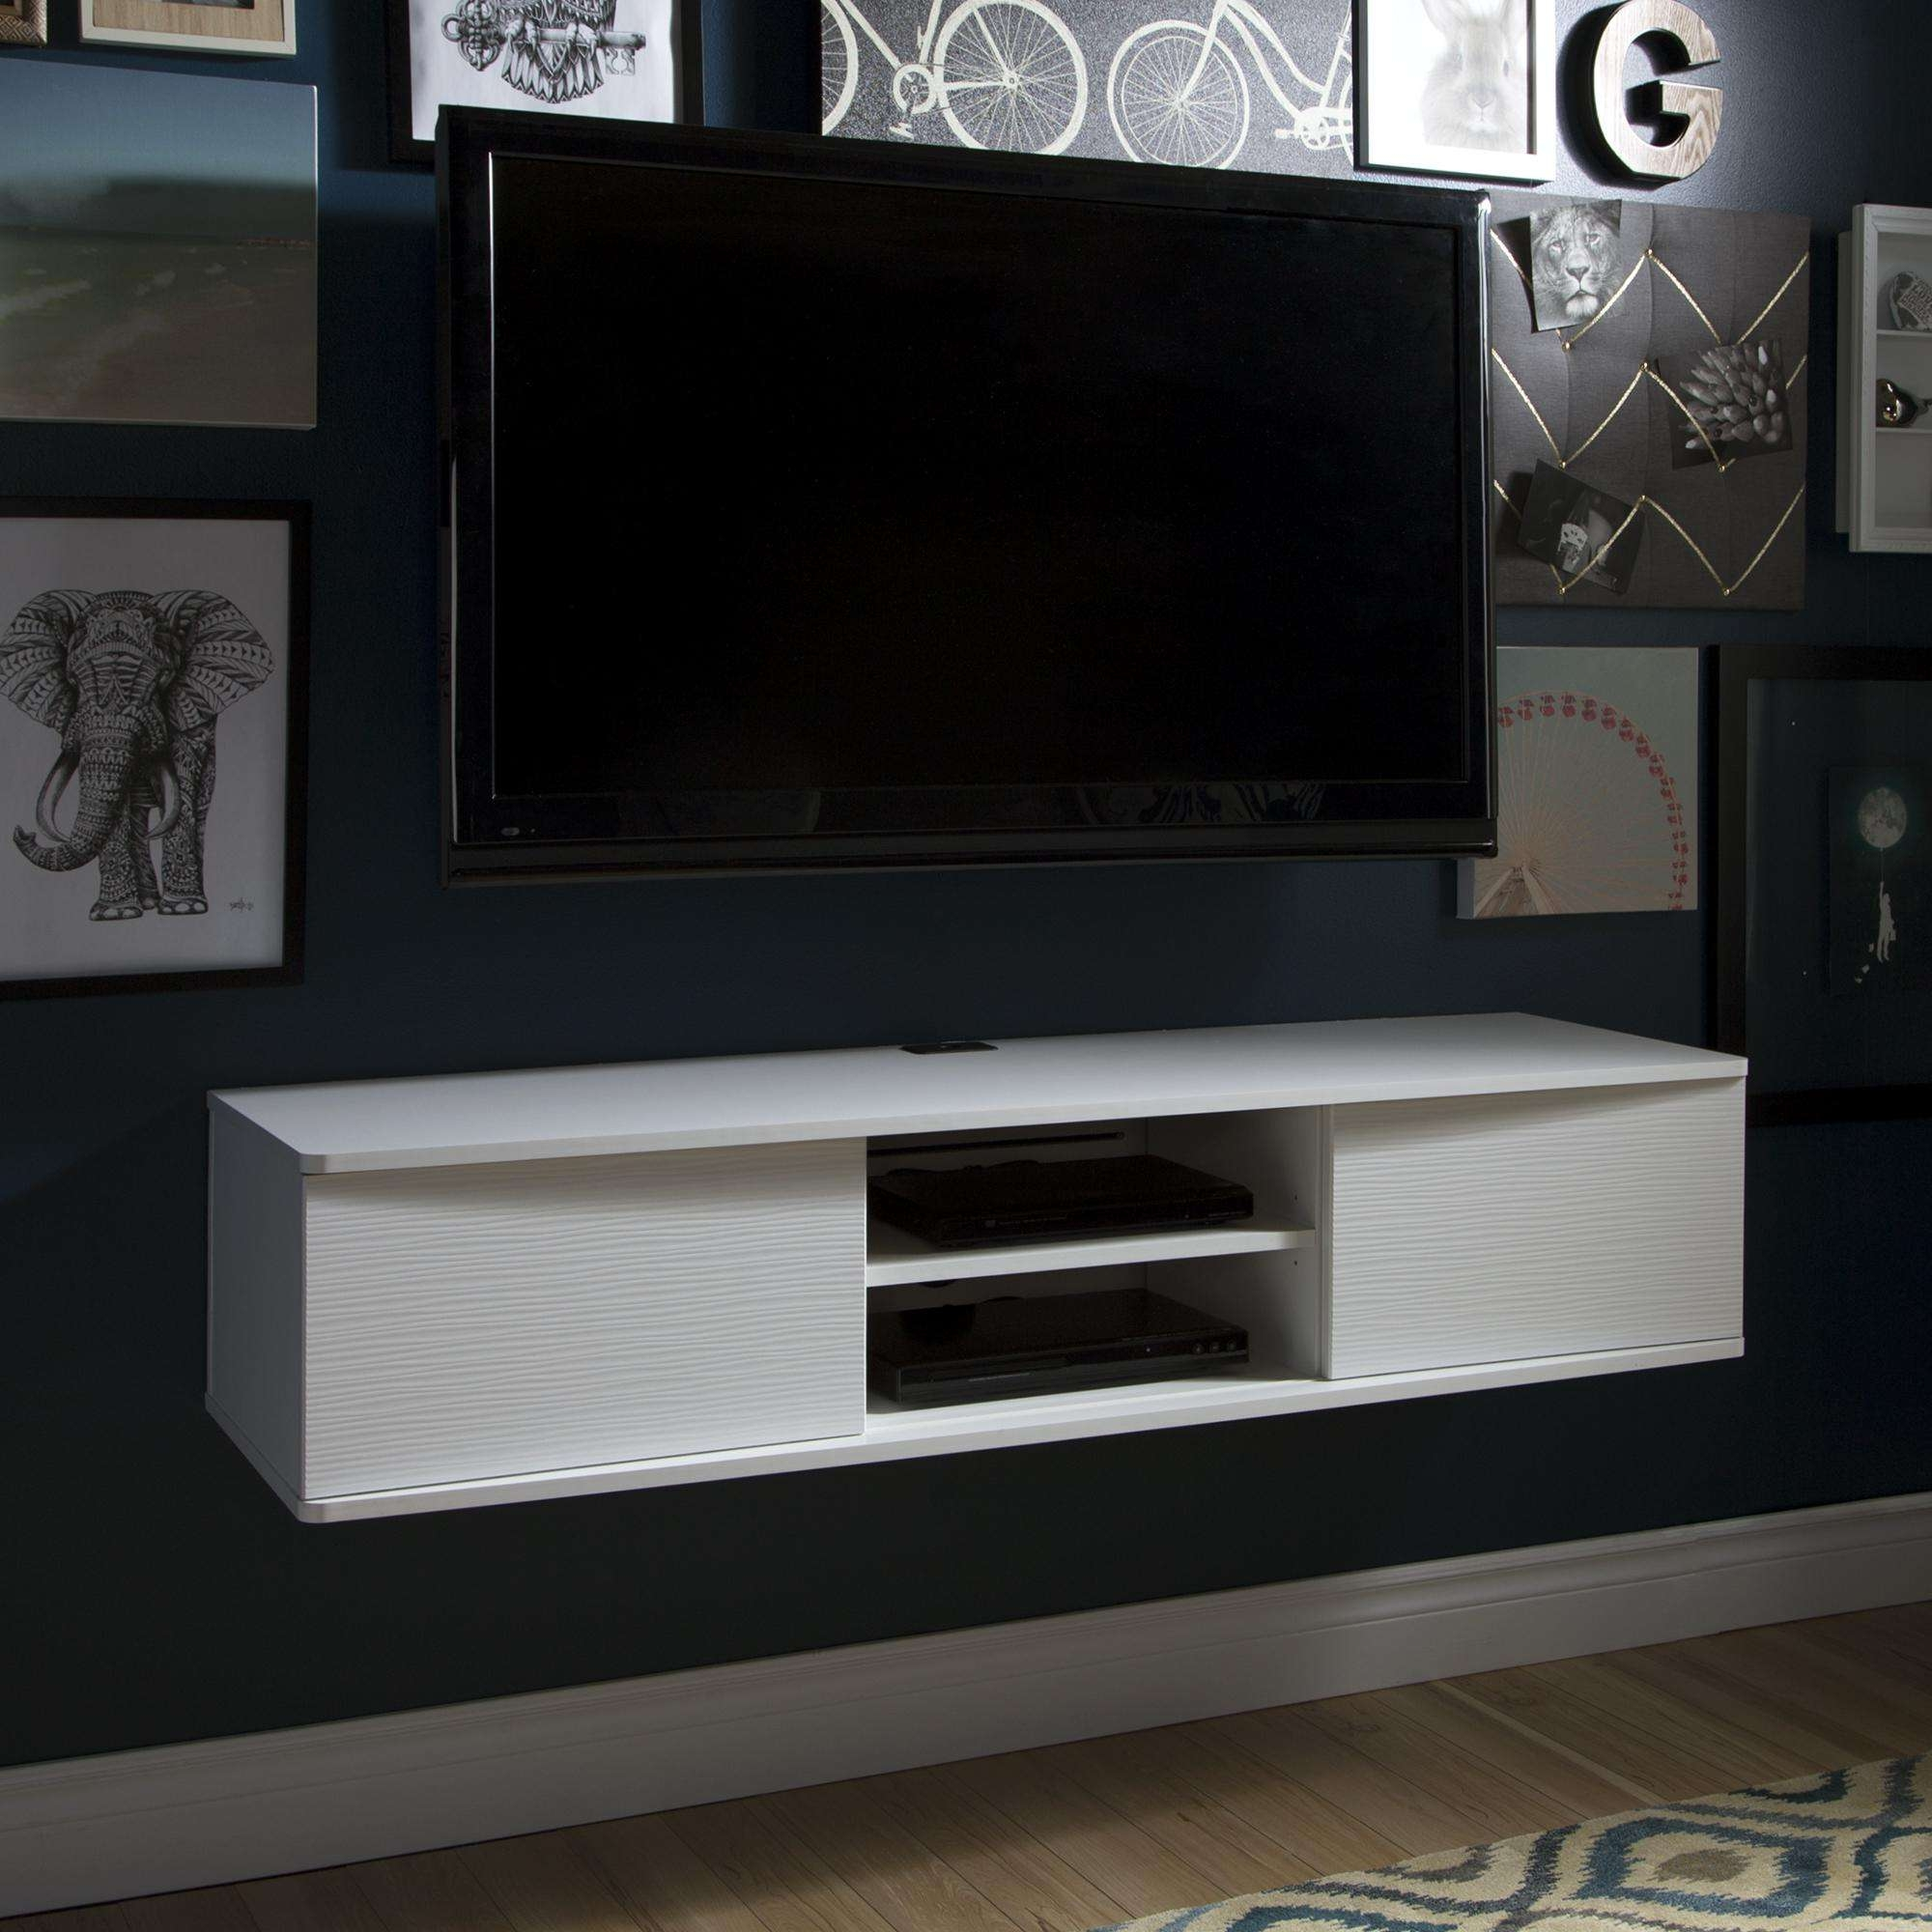 White Wooden Floating Media Cabinet With Shelf Hanging On Grey With Regard To White Wall Mounted Tv Stands (View 15 of 15)